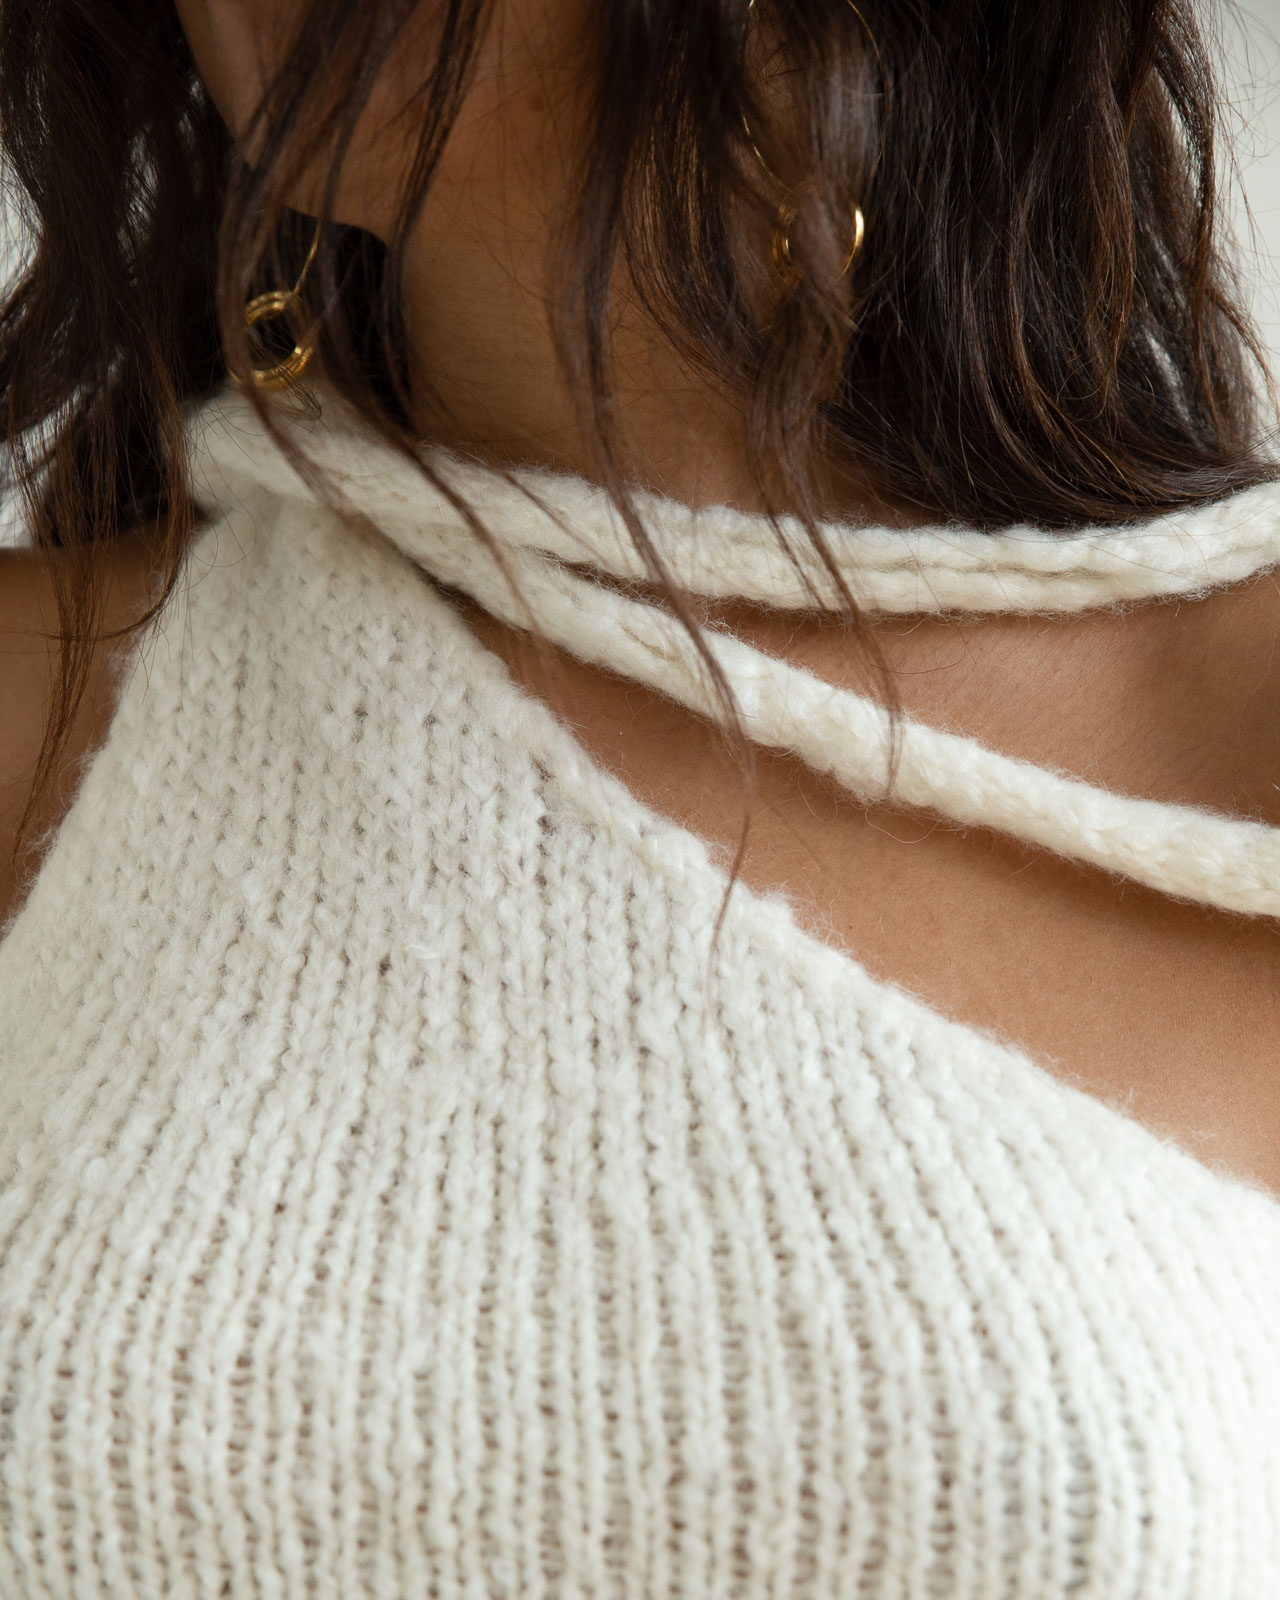 Storm wes wears malaika Raiss white knit top with gold earrings detail shot